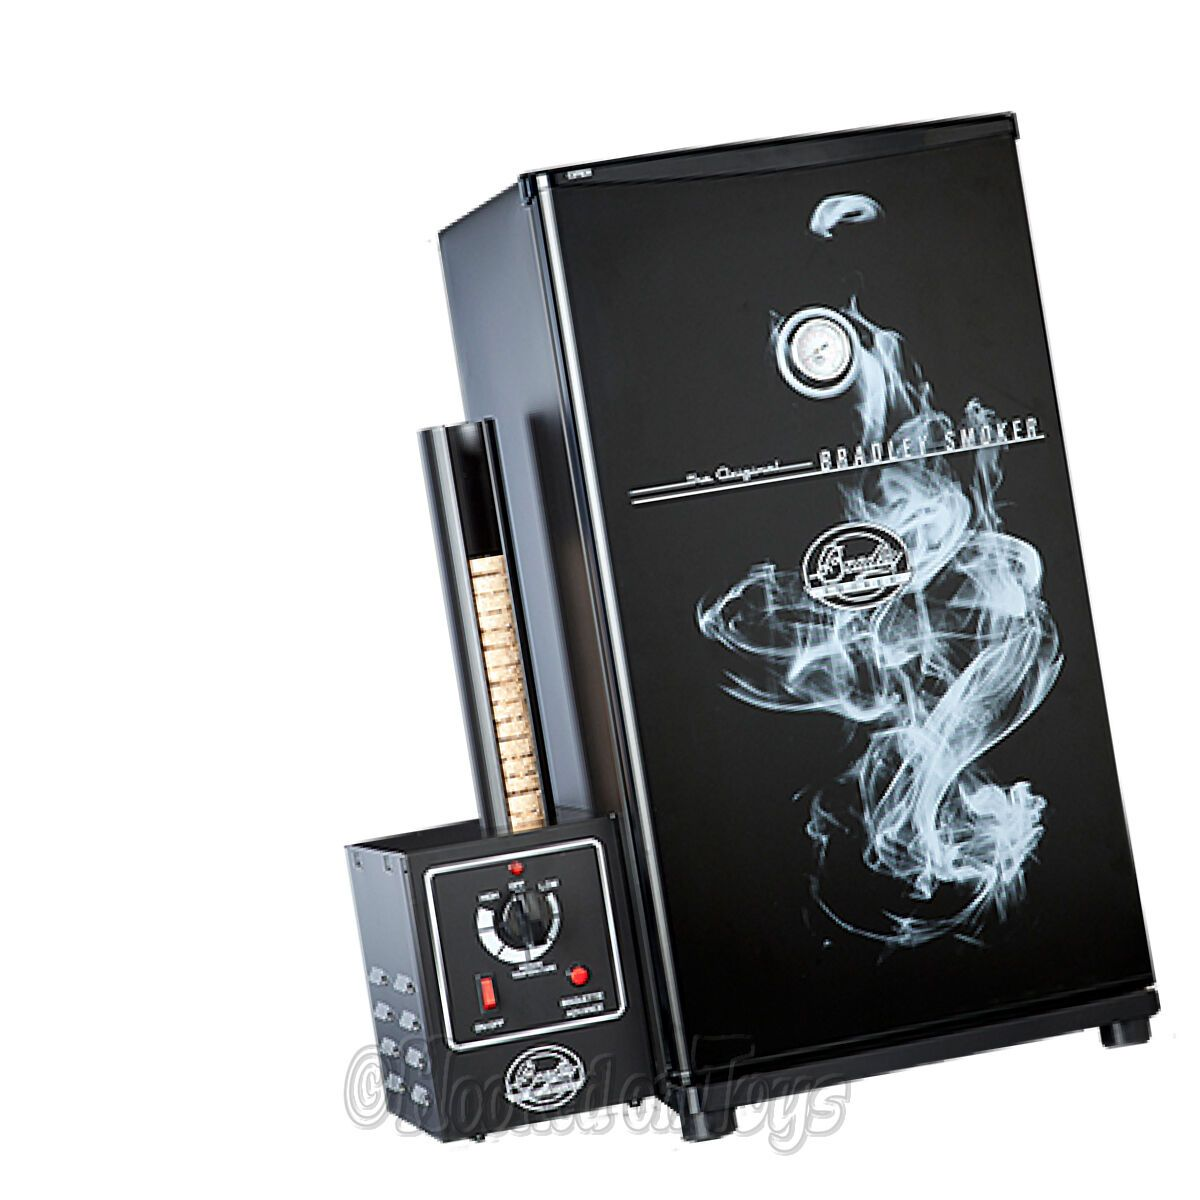 Bradley Original Smoker Bs611 4 Rack 120v Electric Outdoor Meat Barbecue New Smoker Electric Meat Smokers Best Smoker